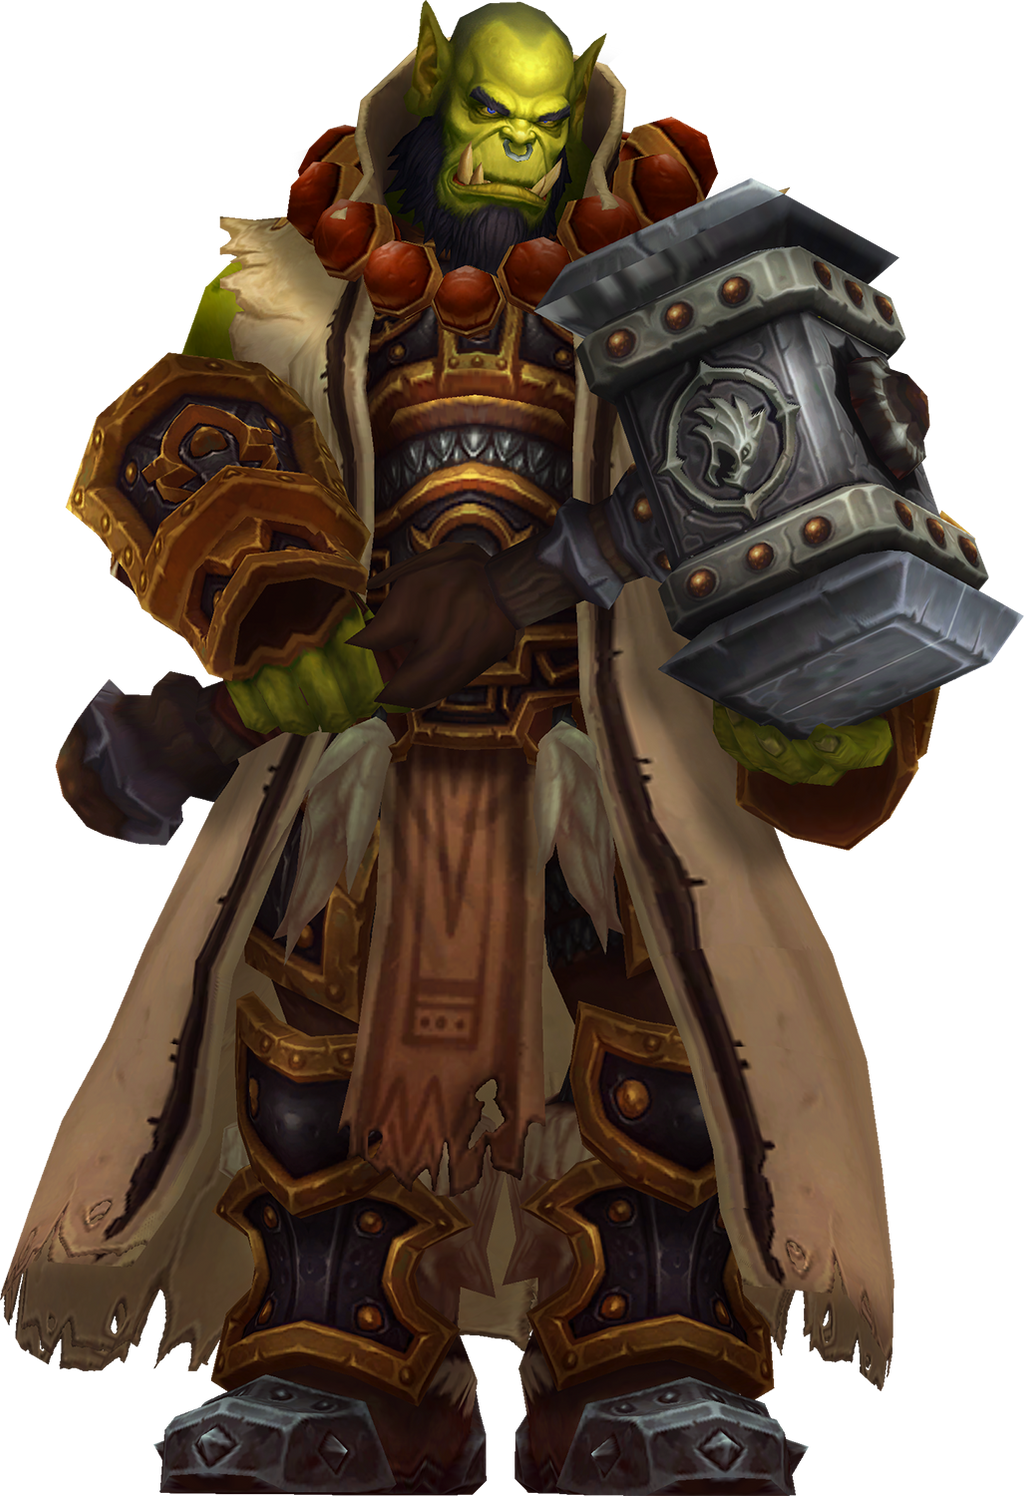 warcraft thrall wow - photo #10